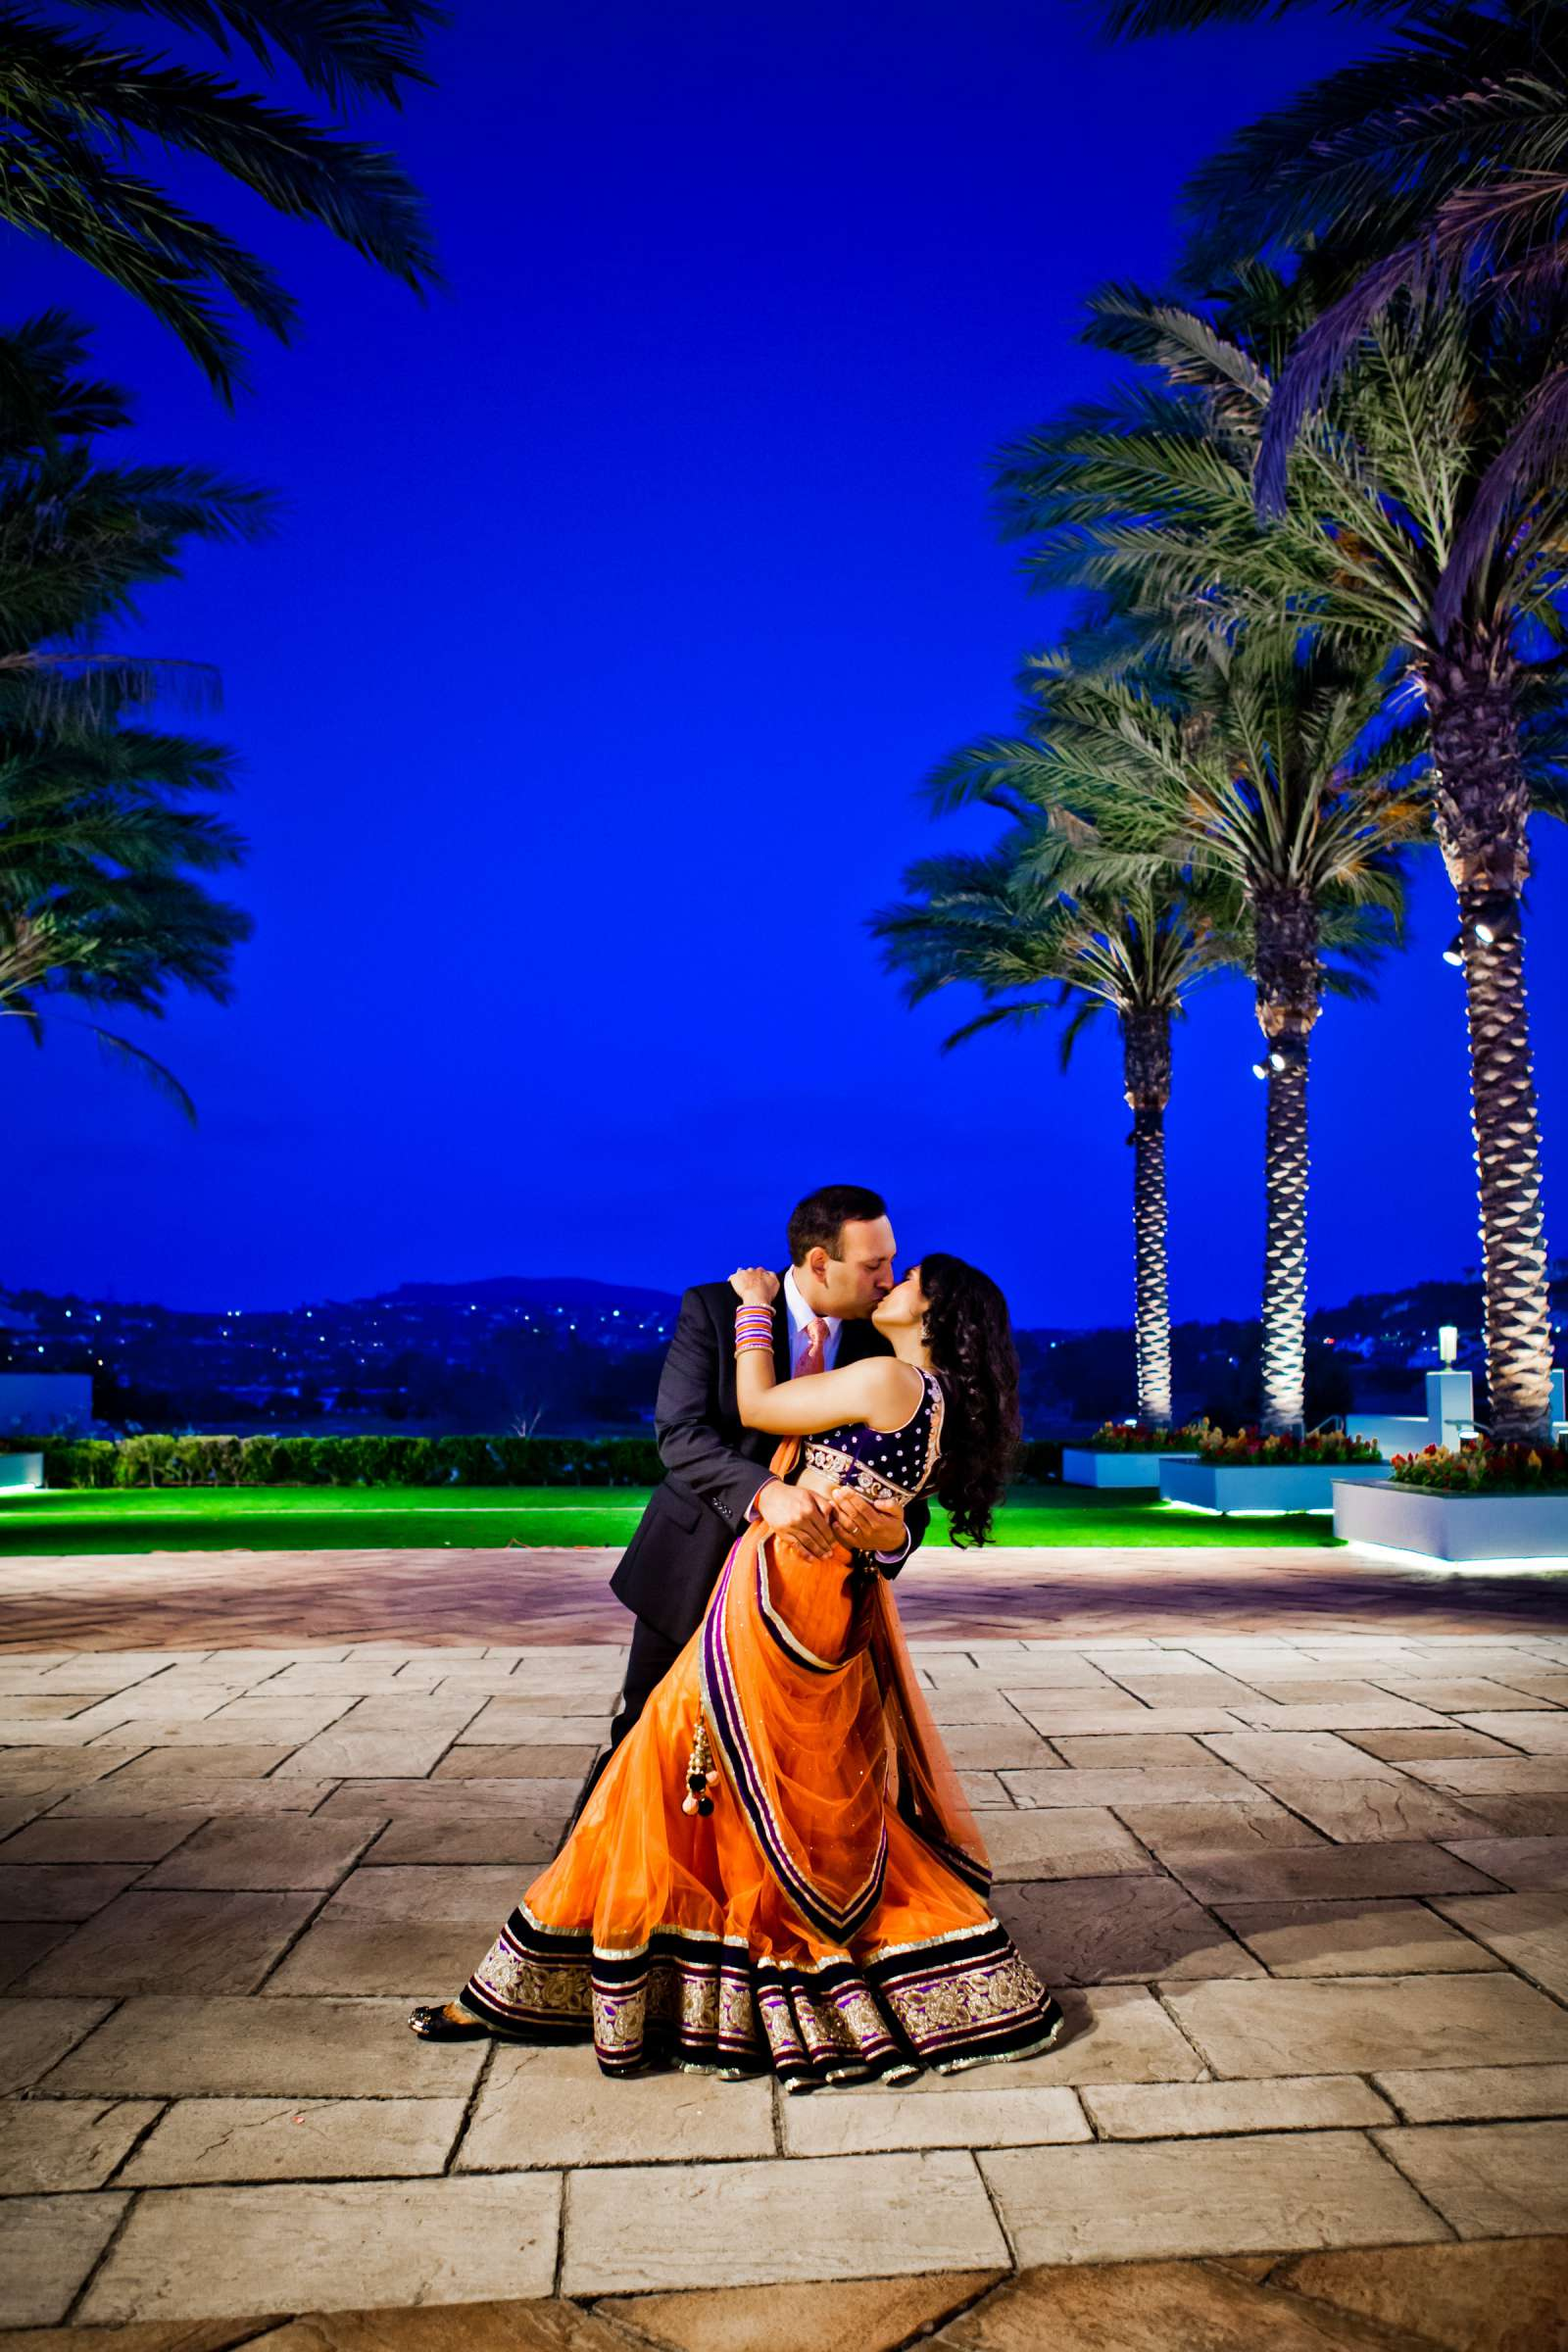 Omni La Costa Resort & Spa Wedding coordinated by Topaz Events, Bhavna and Arun Wedding Photo #330975 by True Photography